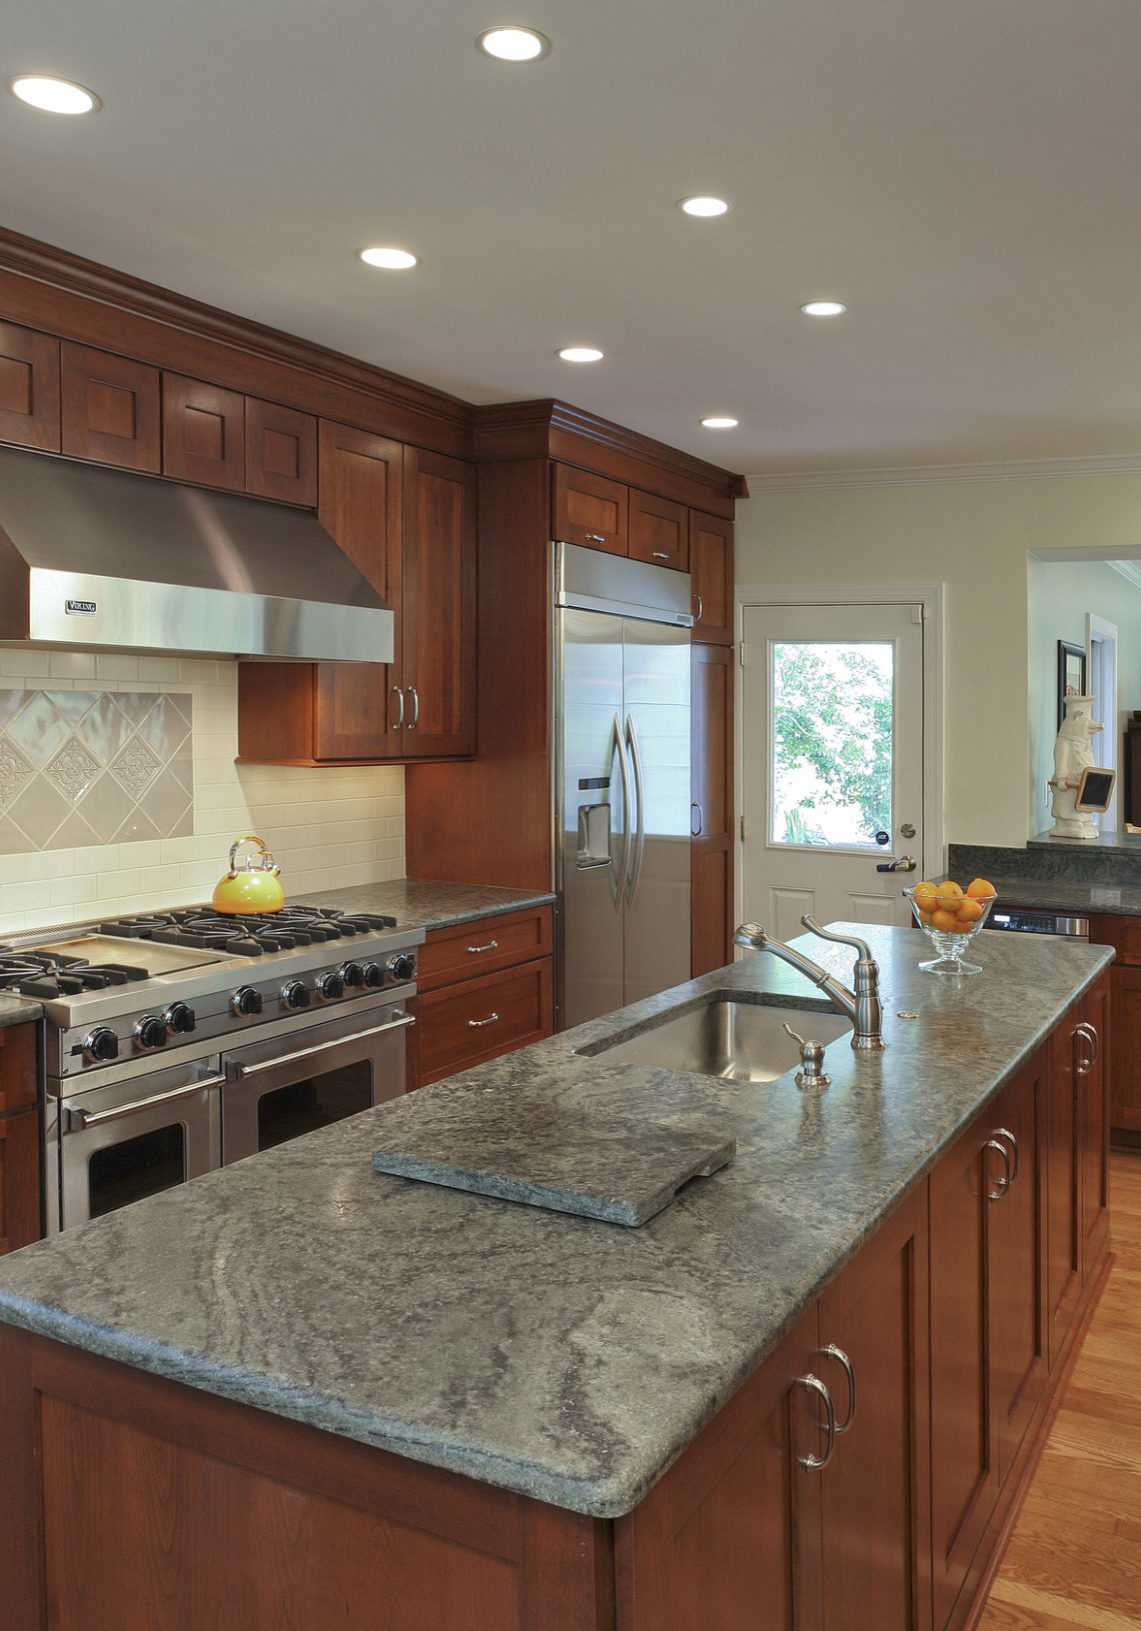 Bethesda, Maryland Home Remodeling Contractors